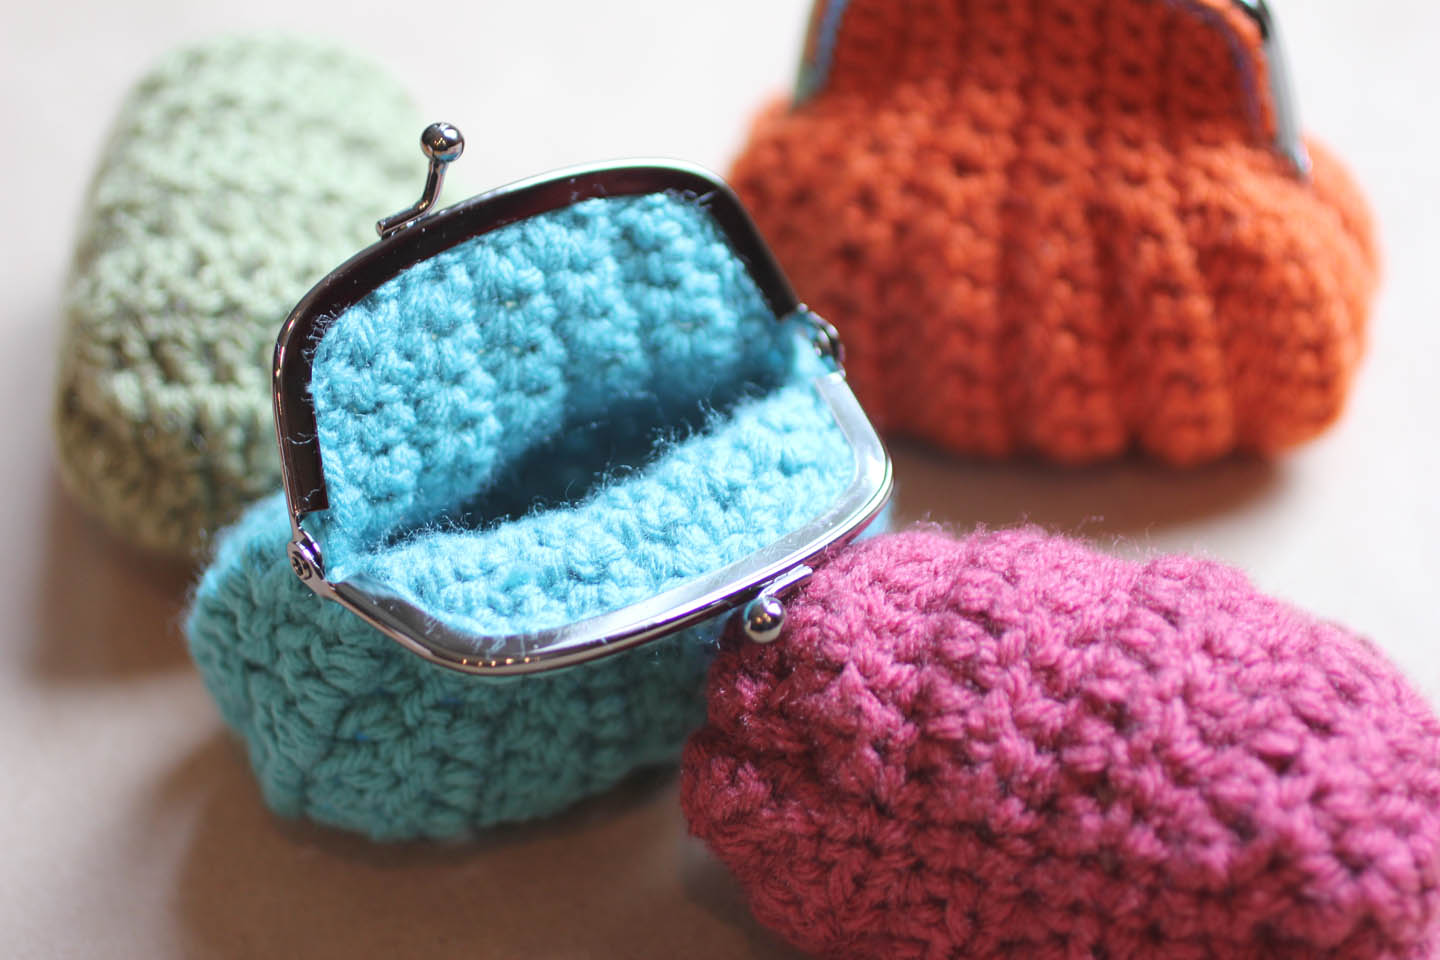 How To Crochet A Purse : Filed Under: Crocheting , Uncategorized 63 Comments